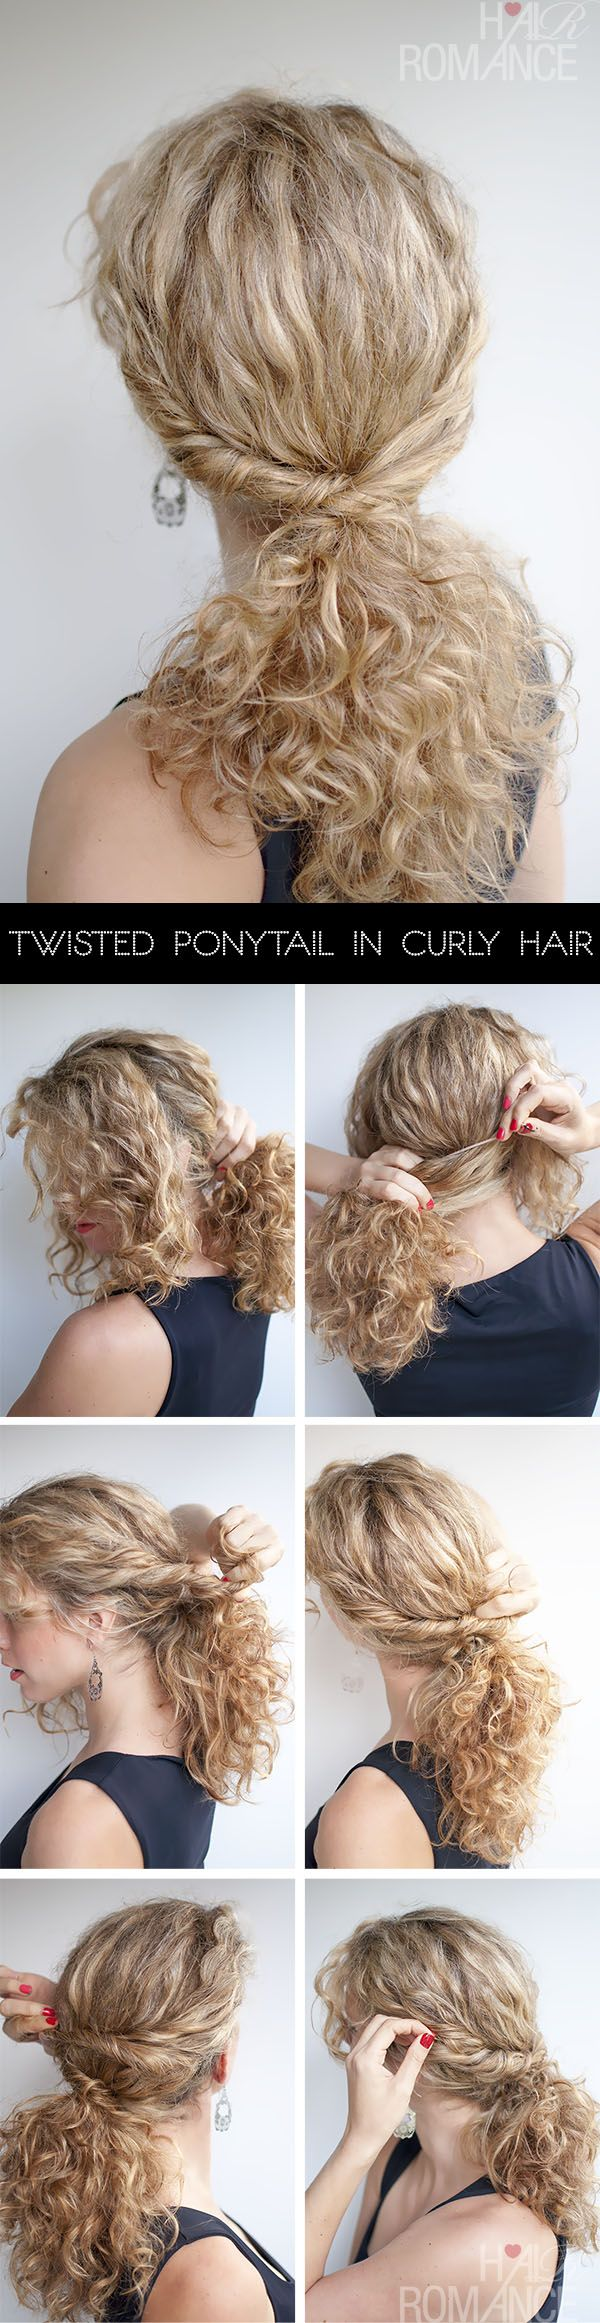 Curly Hairstyle Tutorial The Twist Over Ponytail Hair Romance Hair Styles Twist Ponytail Curly Hair Styles Naturally